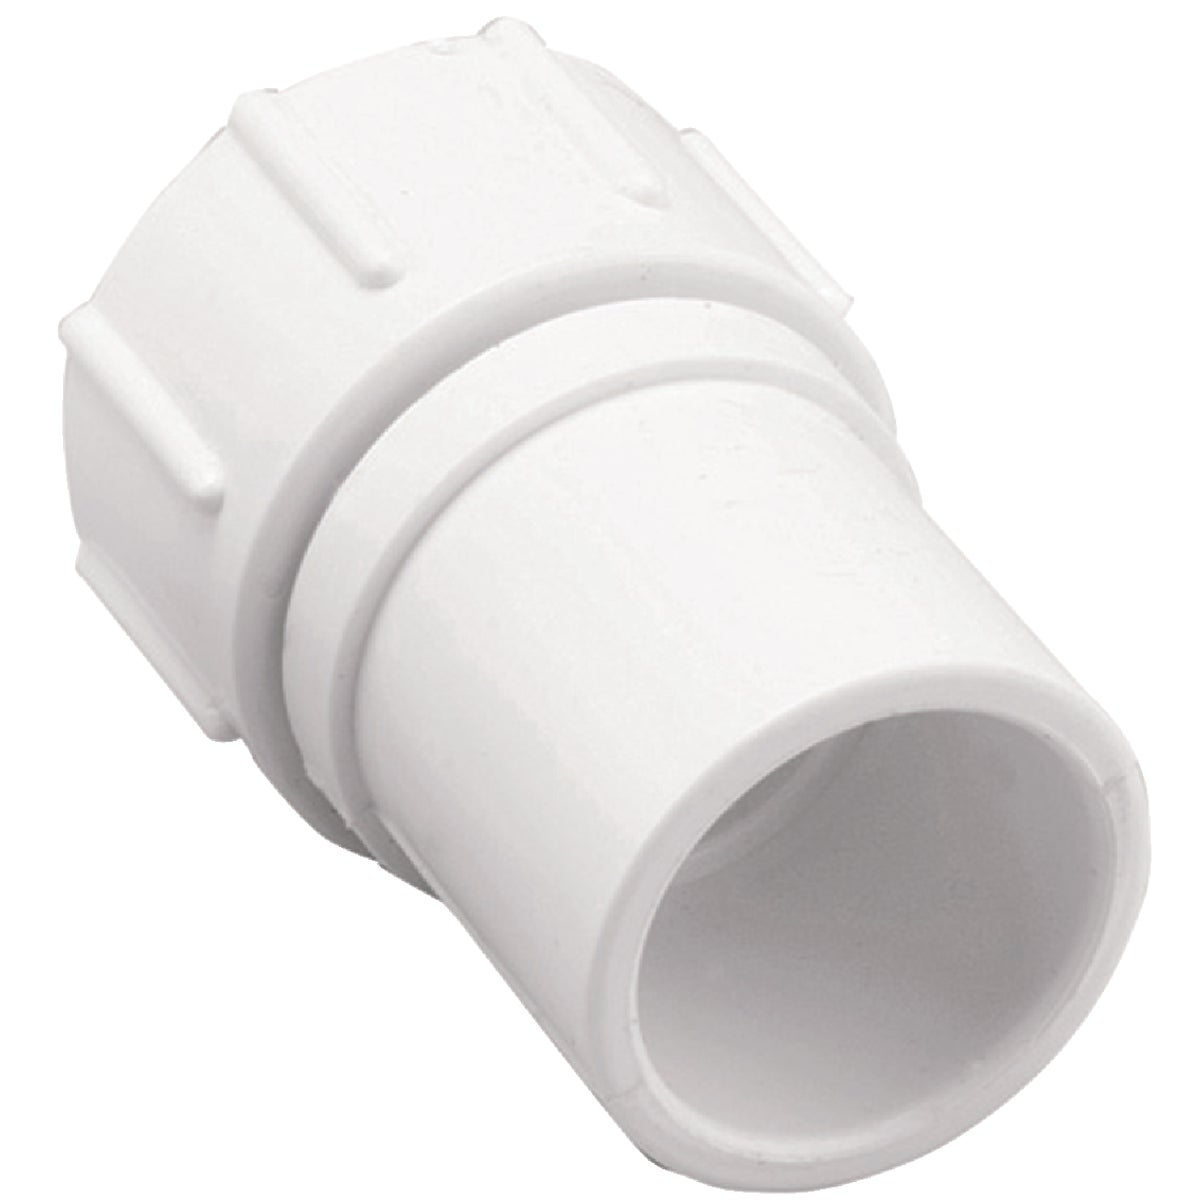 HOSE ADAPTER SWIVL - 10118H by Orbit